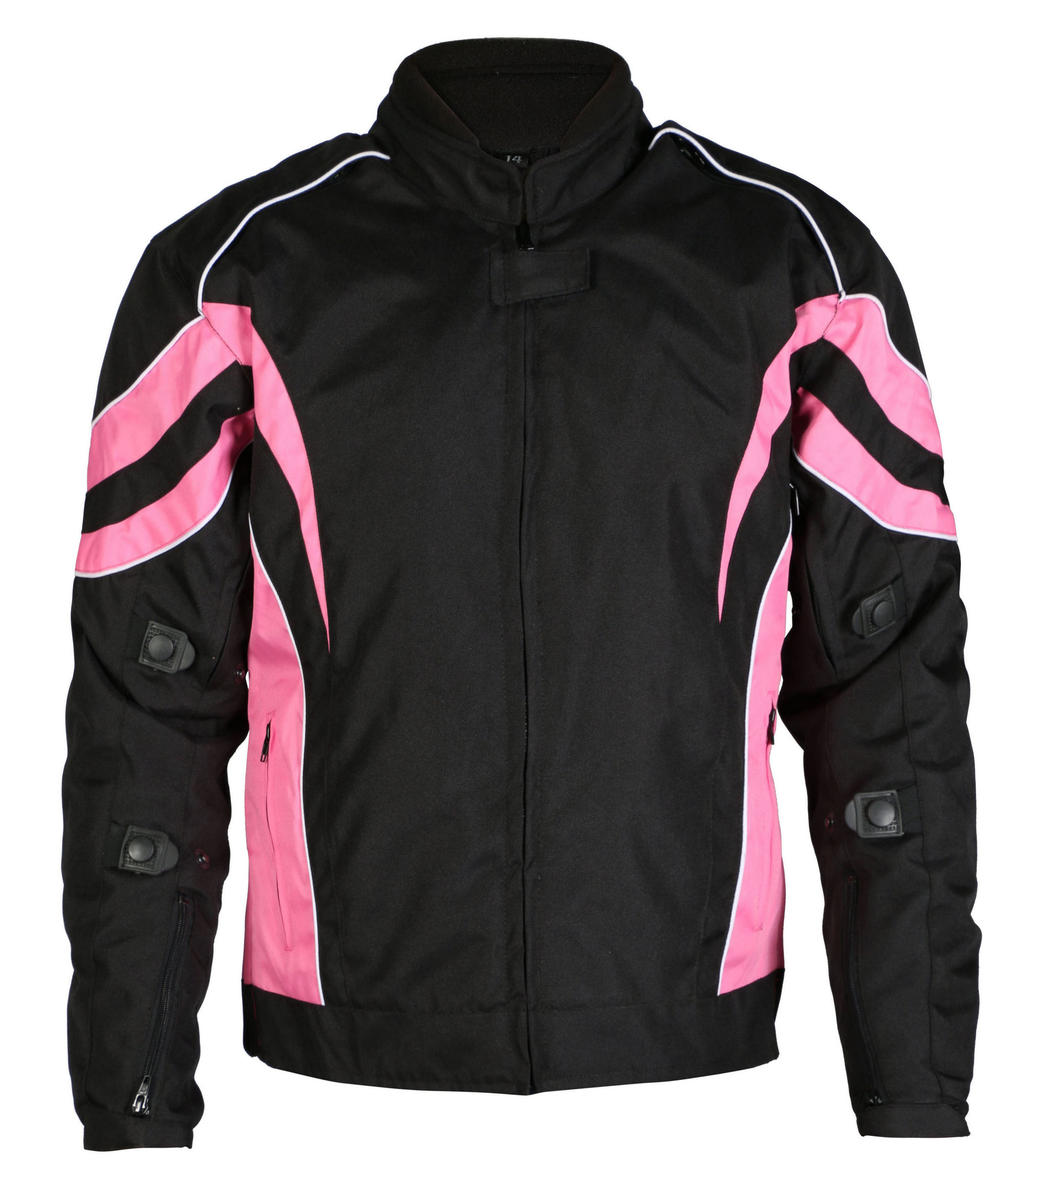 Turin Womens Black & Pink Armoured Jacket